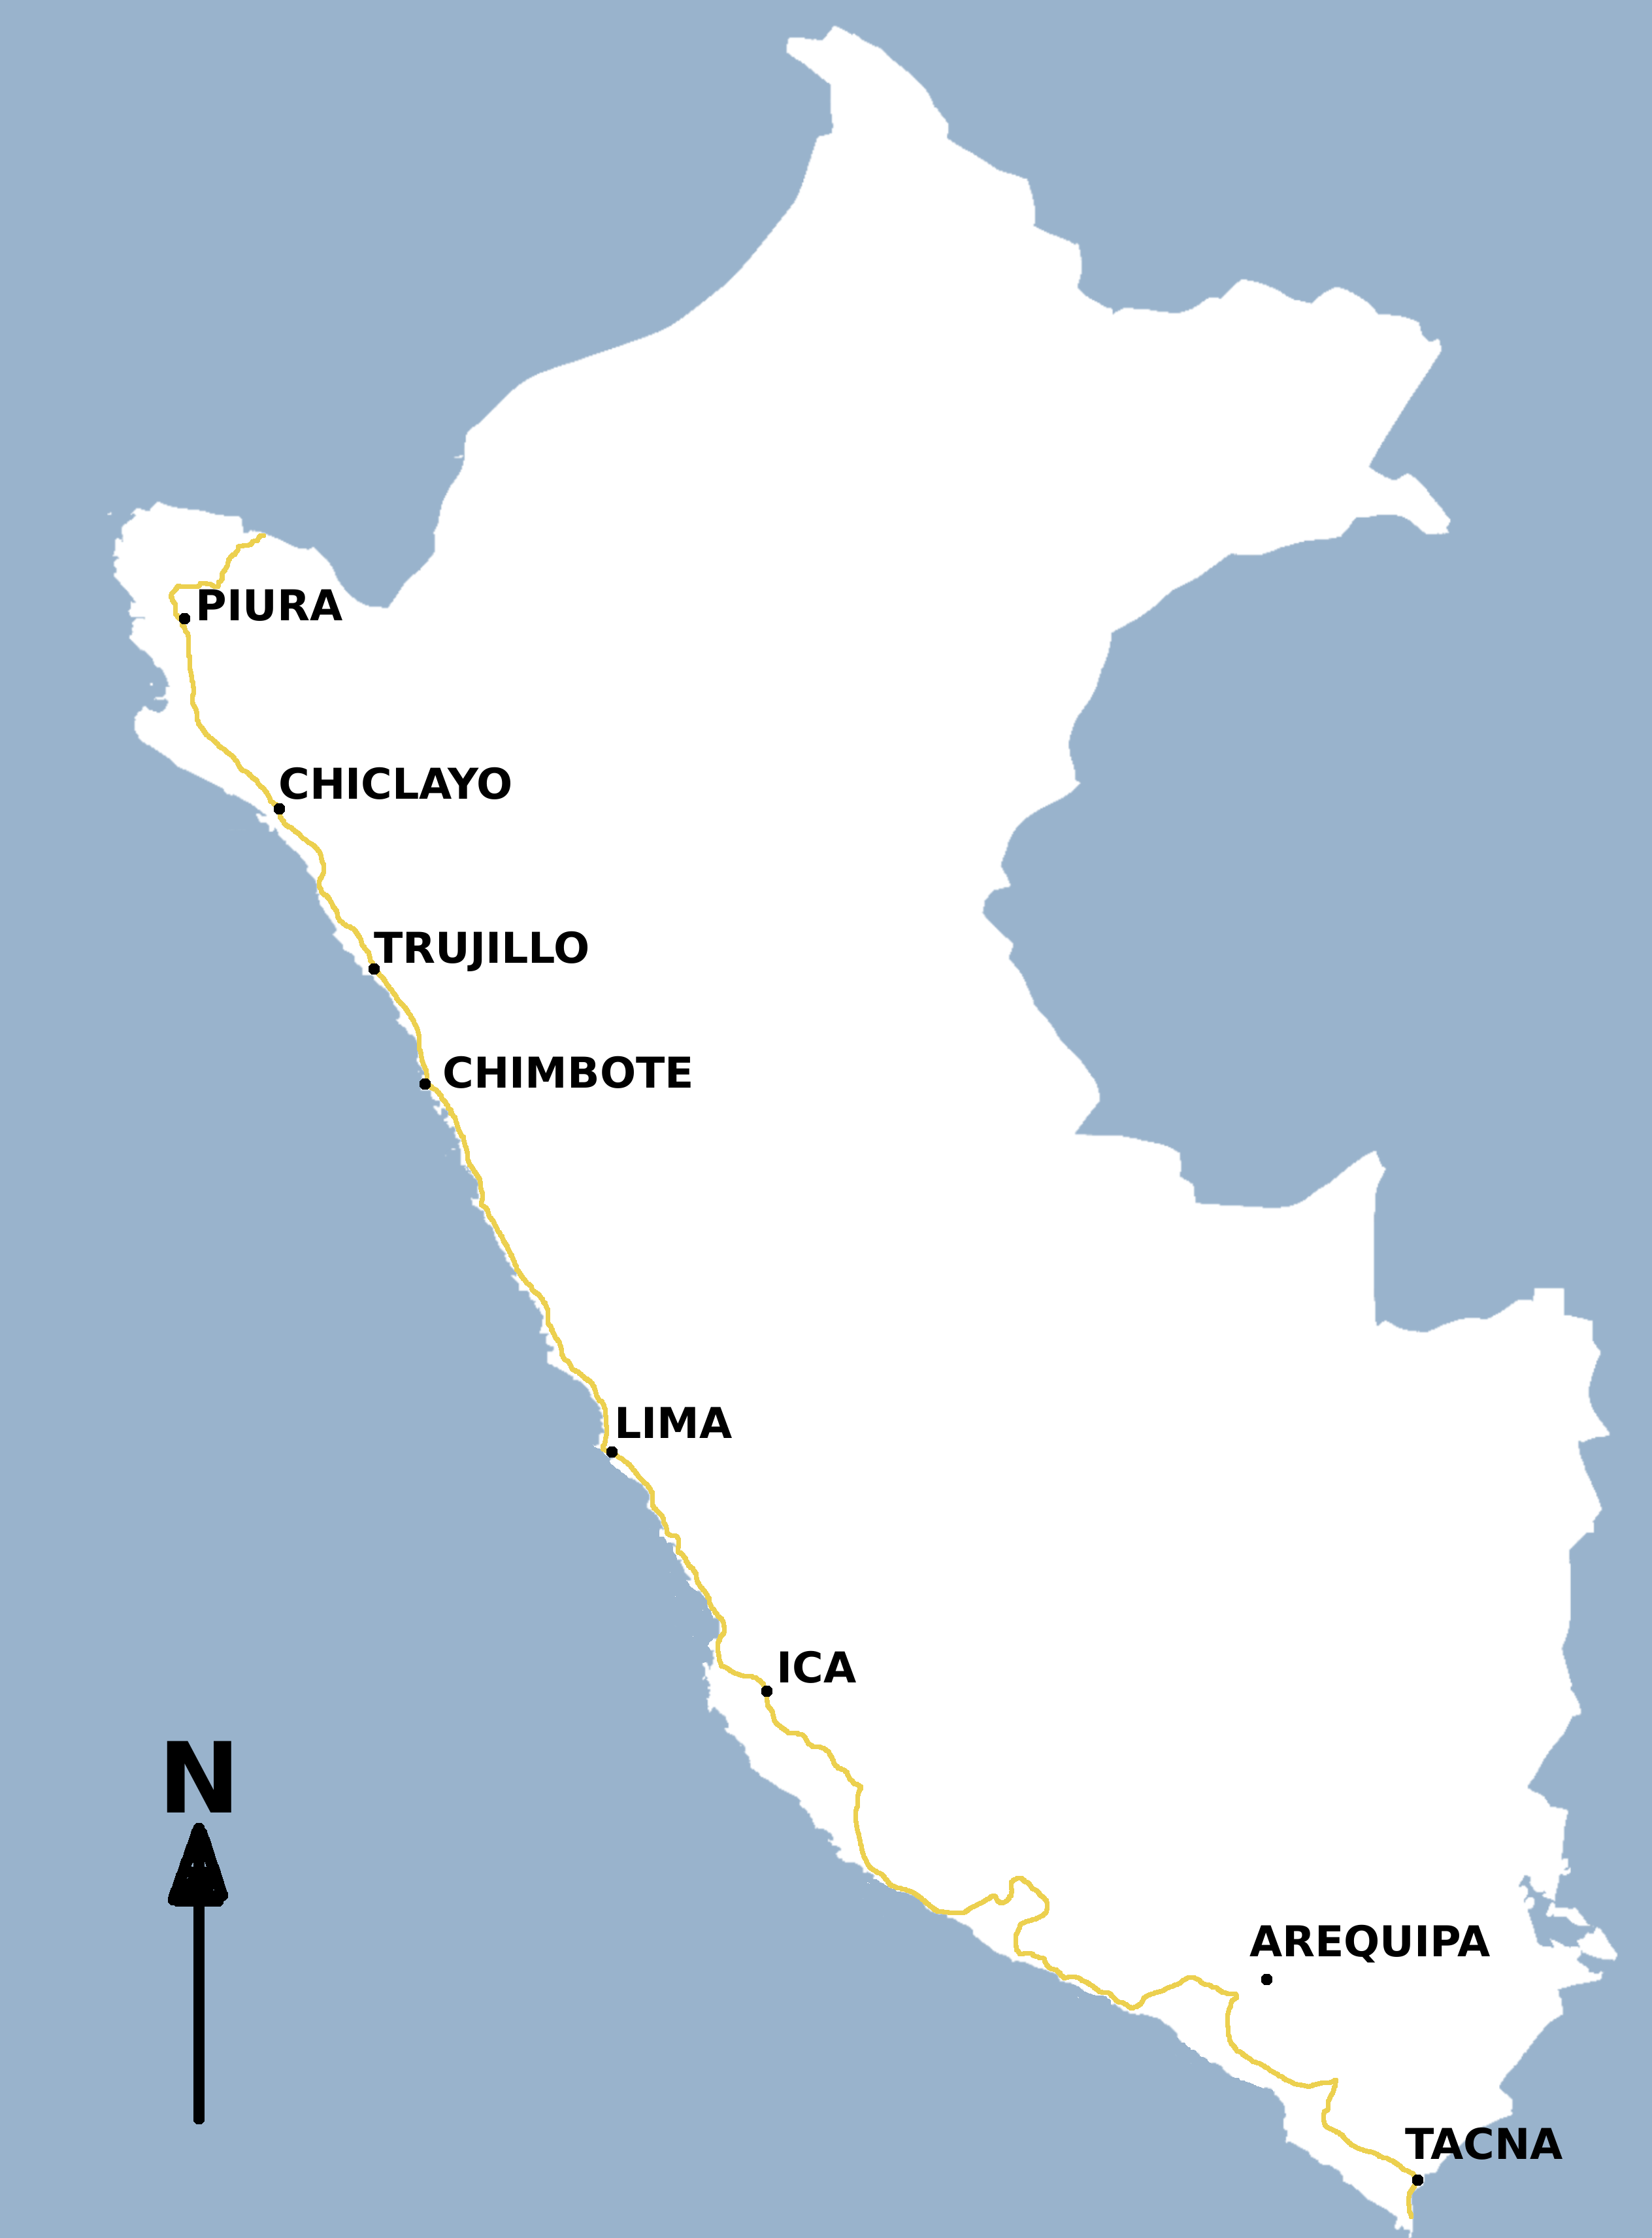 map of pan american highway with File Peru Ruta 001  Panamericana on G panamerican additionally Alaska To Argentina Cycling The Pan American Highway additionally 6026651109 in addition Continente Americano besides Chacchoben.